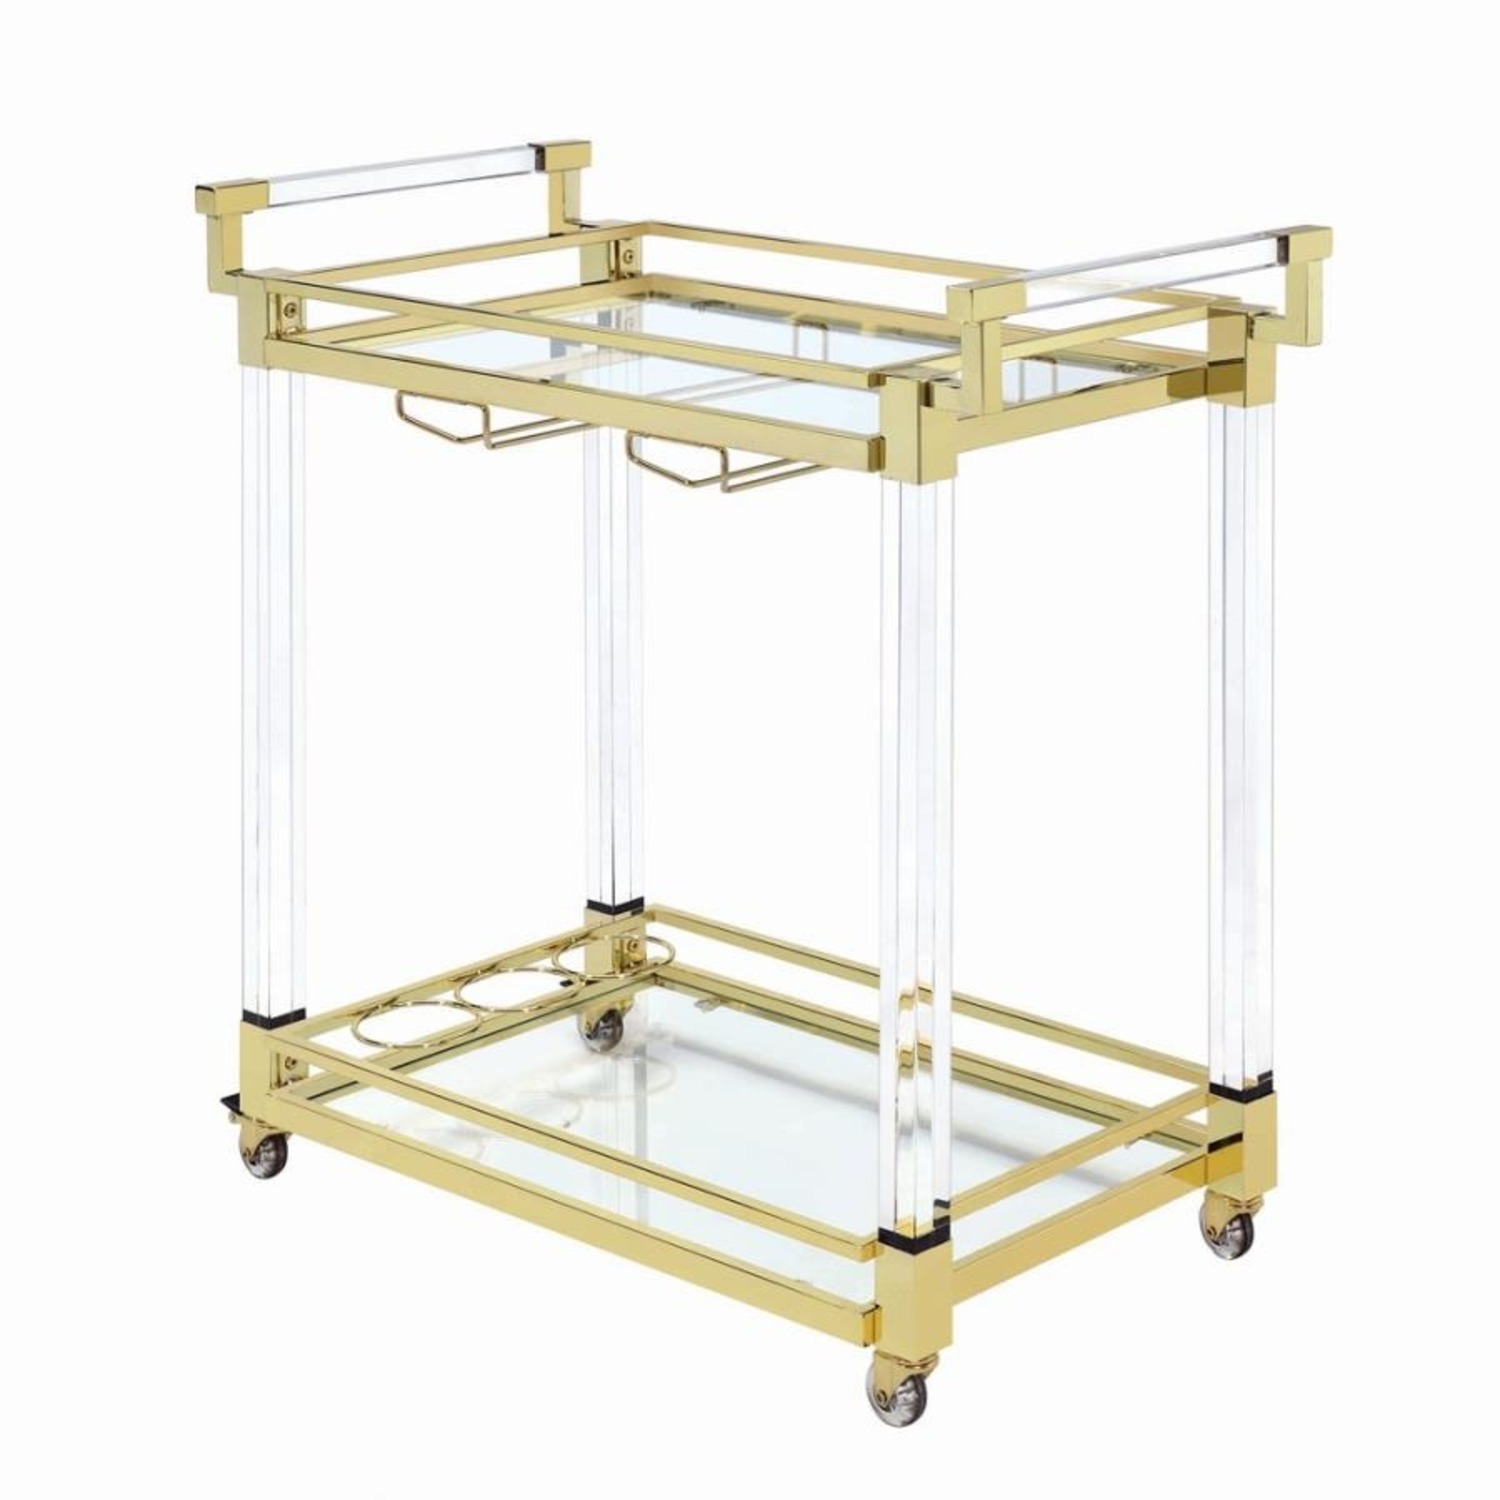 Serving Cart In Clear Acrylic & Brass Finish - image-0